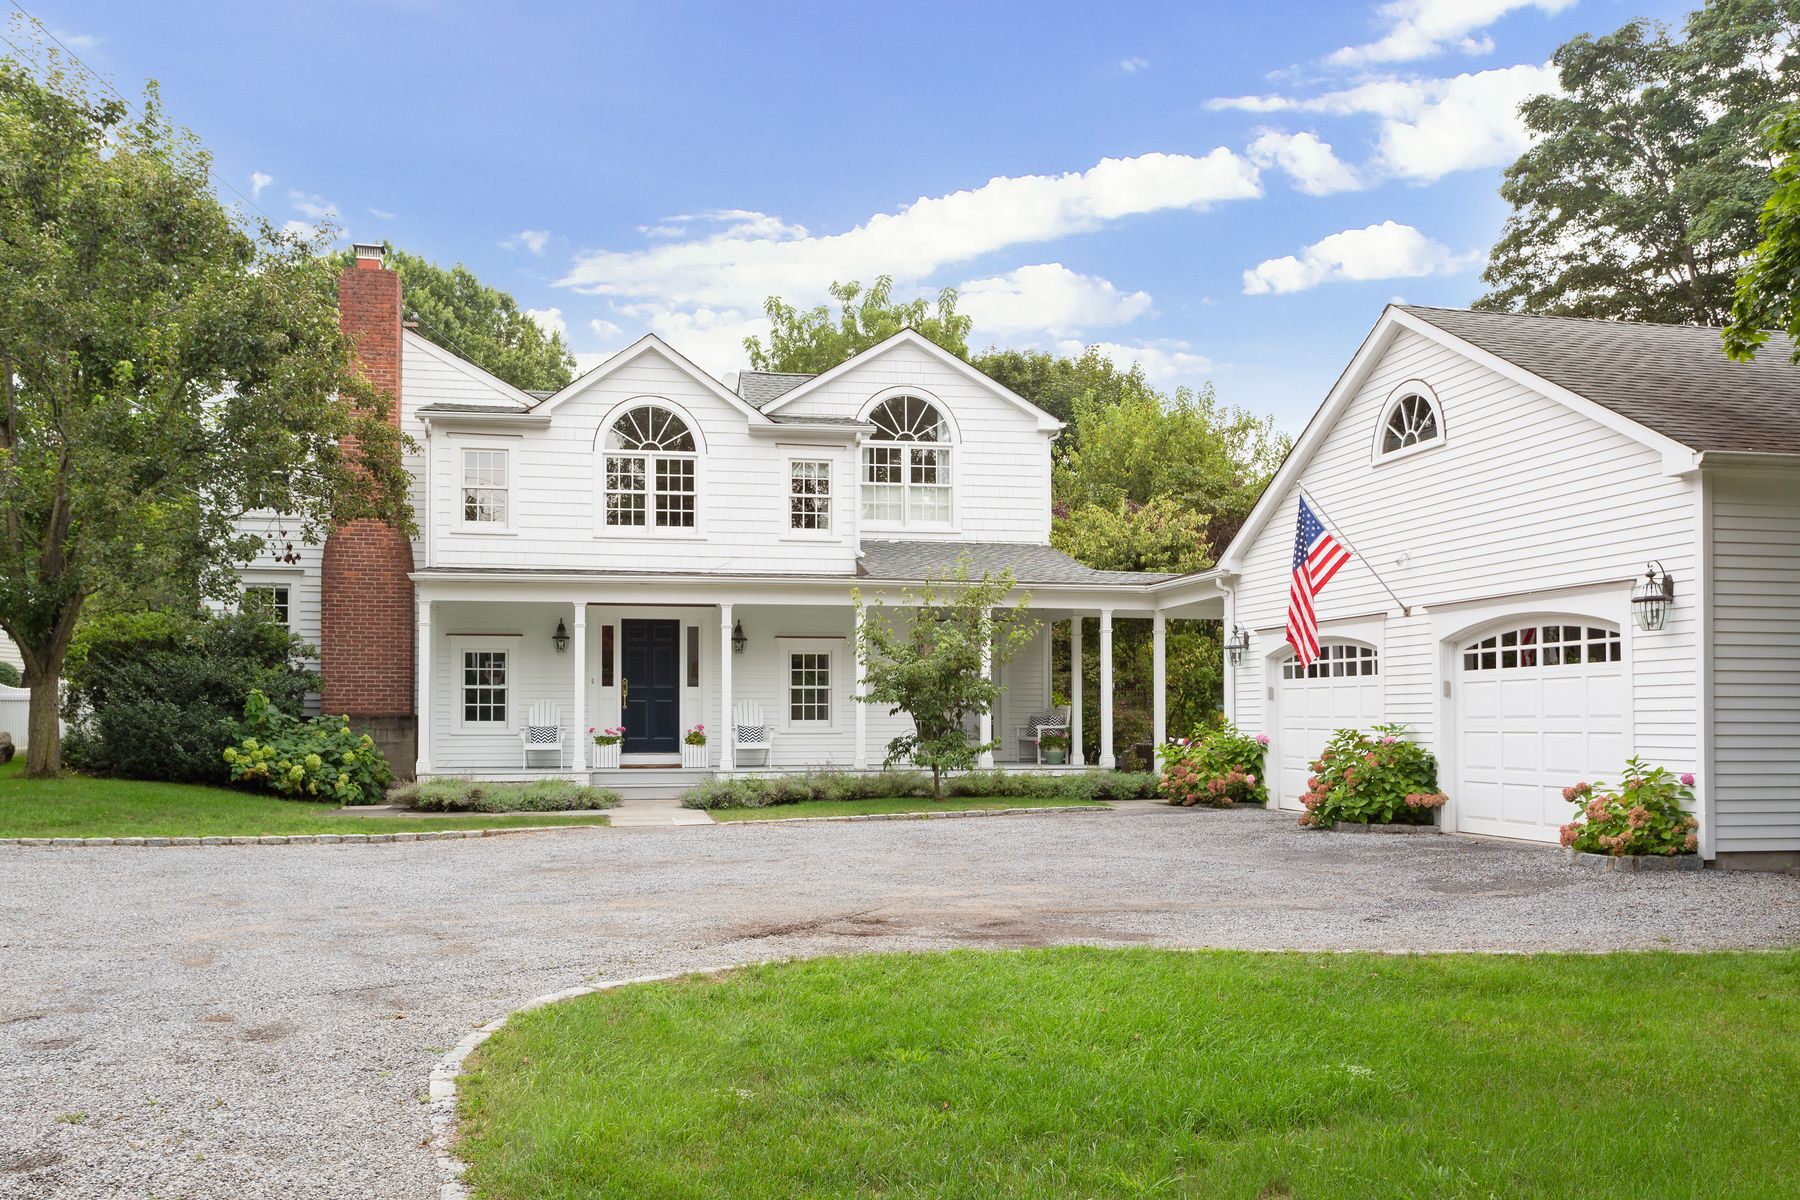 Single Family Homes for Sale at Welcoming Farmhouse in Riverside 220 Riverside Avenue Riverside, Connecticut 06878 United States